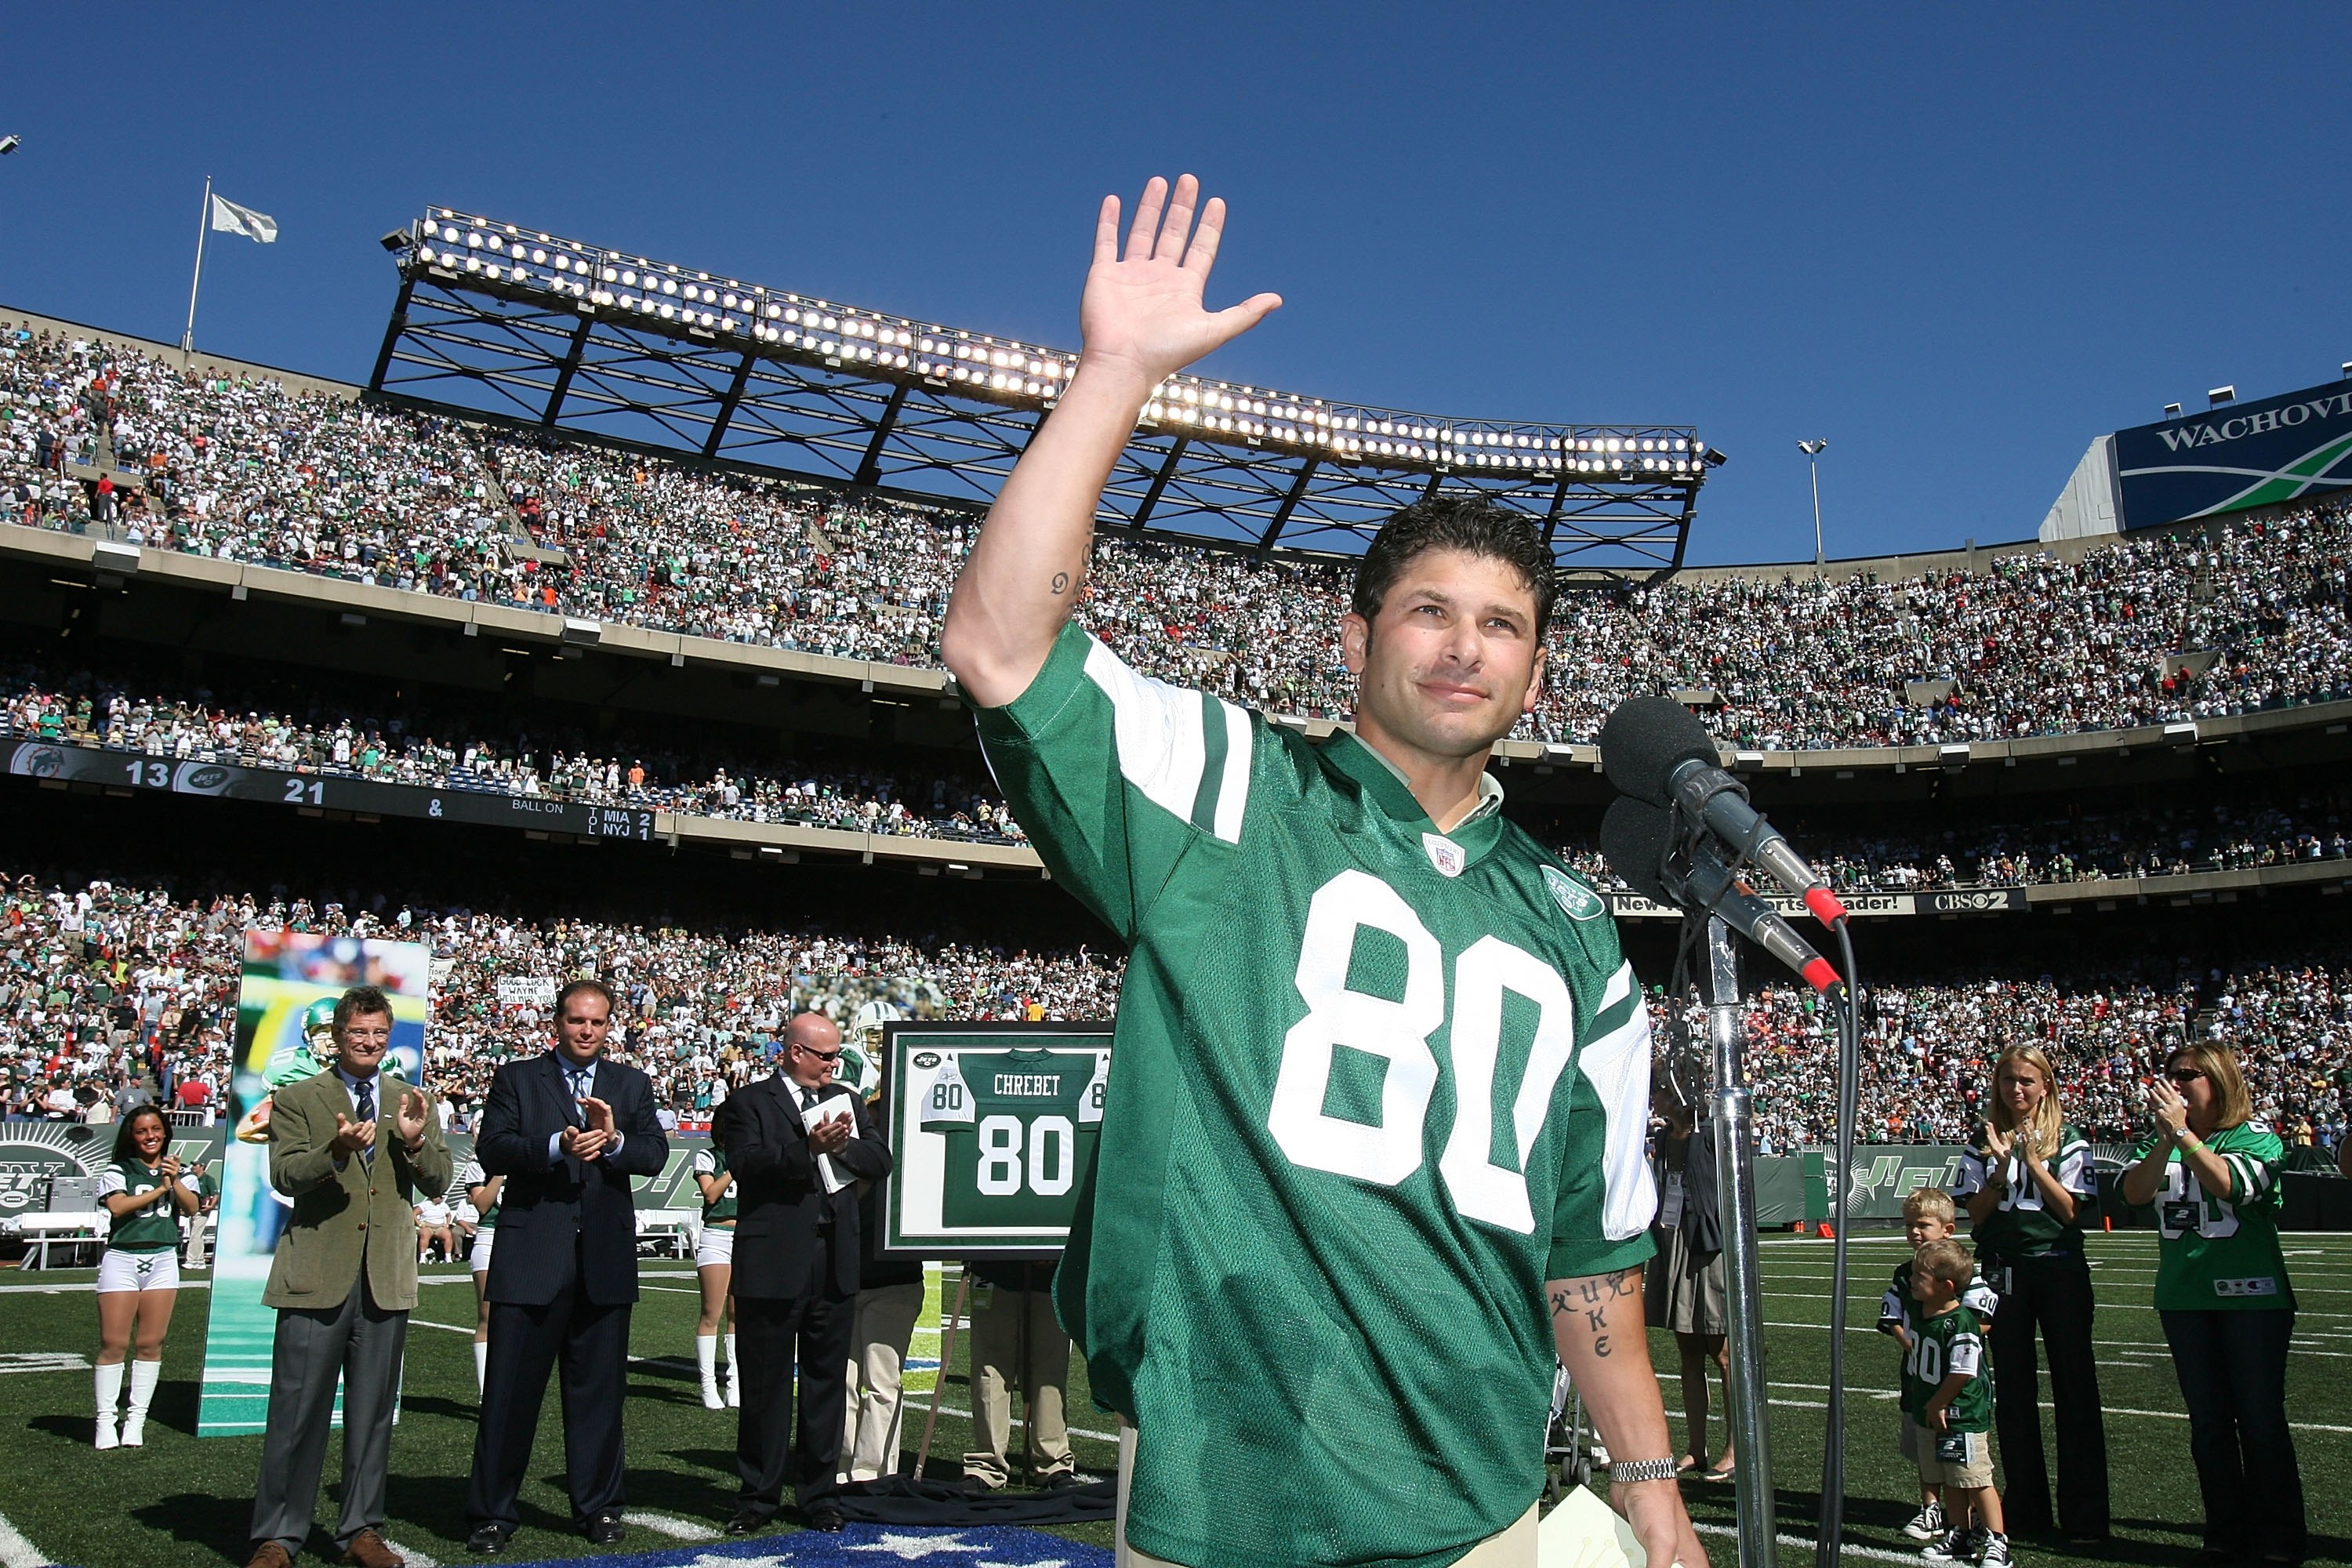 Wayne Chrebet being honored at halftime of a Jets game